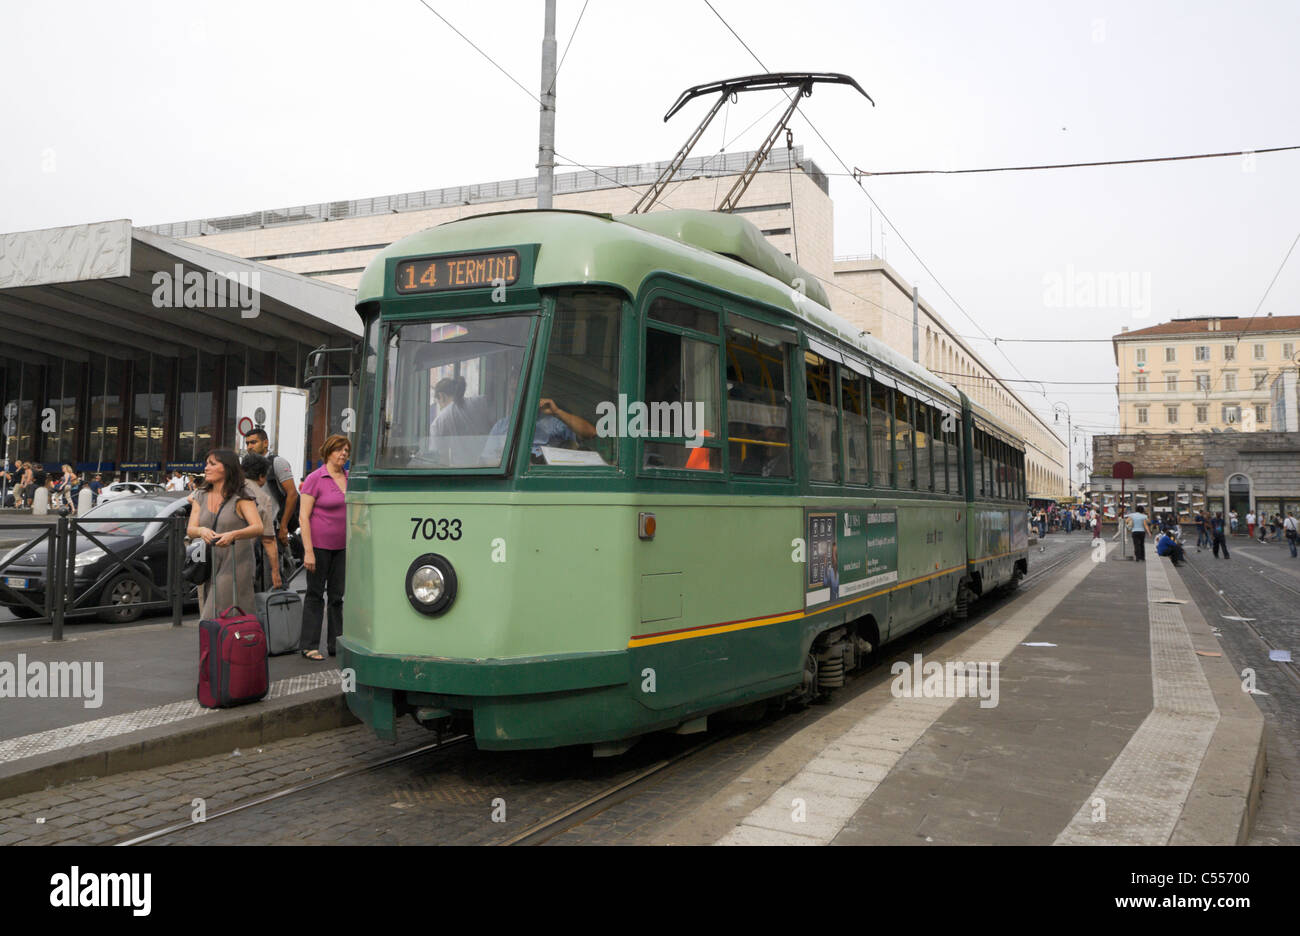 Number 14 tram outside Termini train station in Rome - Stock Image